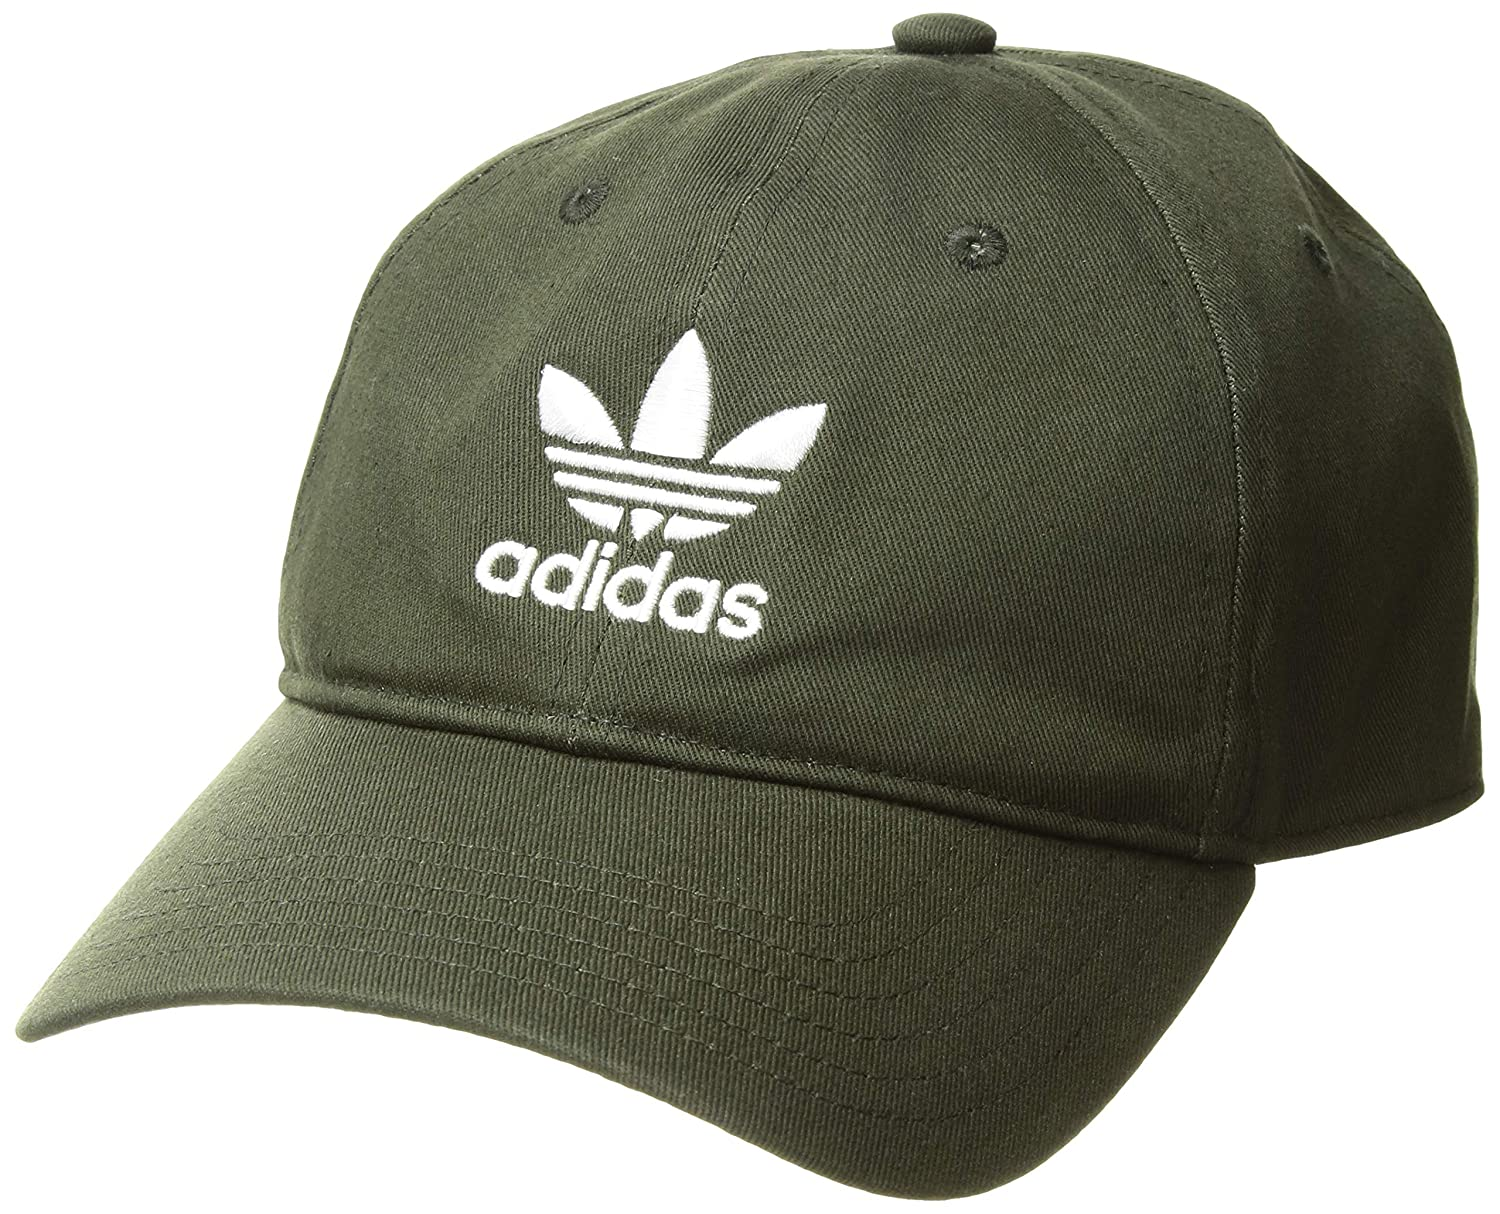 One Size Agron Hats /& Accessories 975950 adidas Men/'s Originals Relaxed Strapback Cap Night Cargo//White